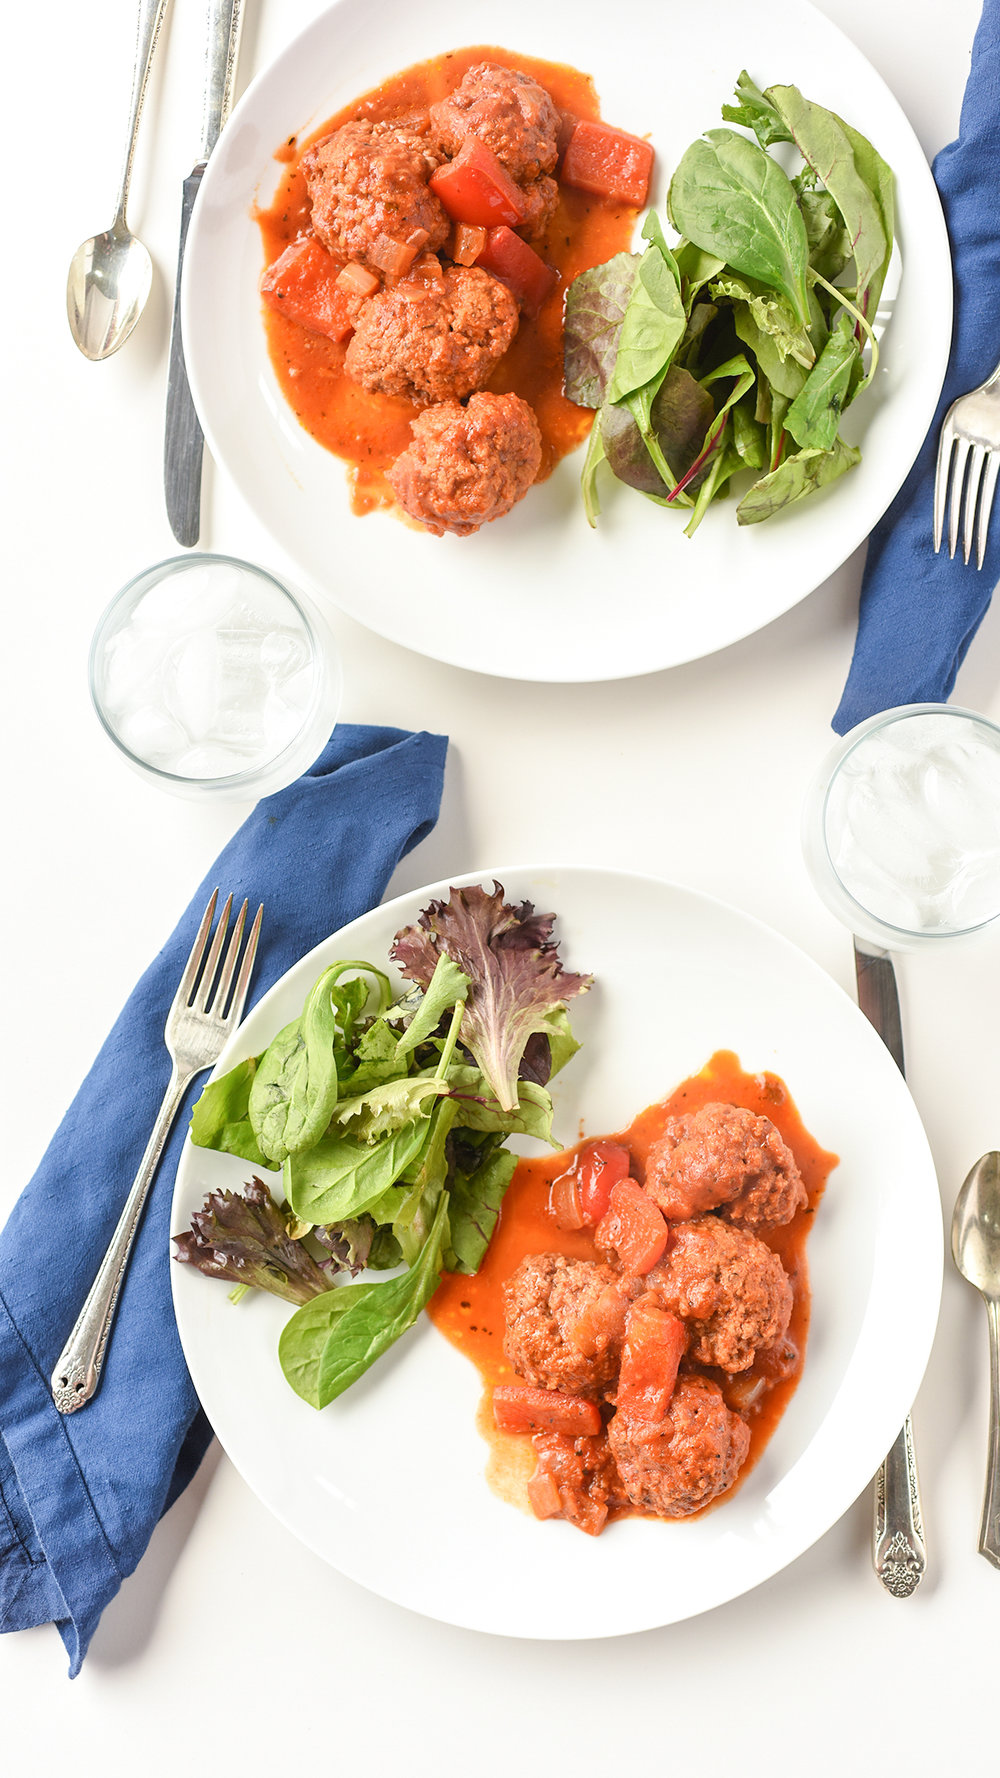 Ali Hedin | Meatballs in Red Sauce